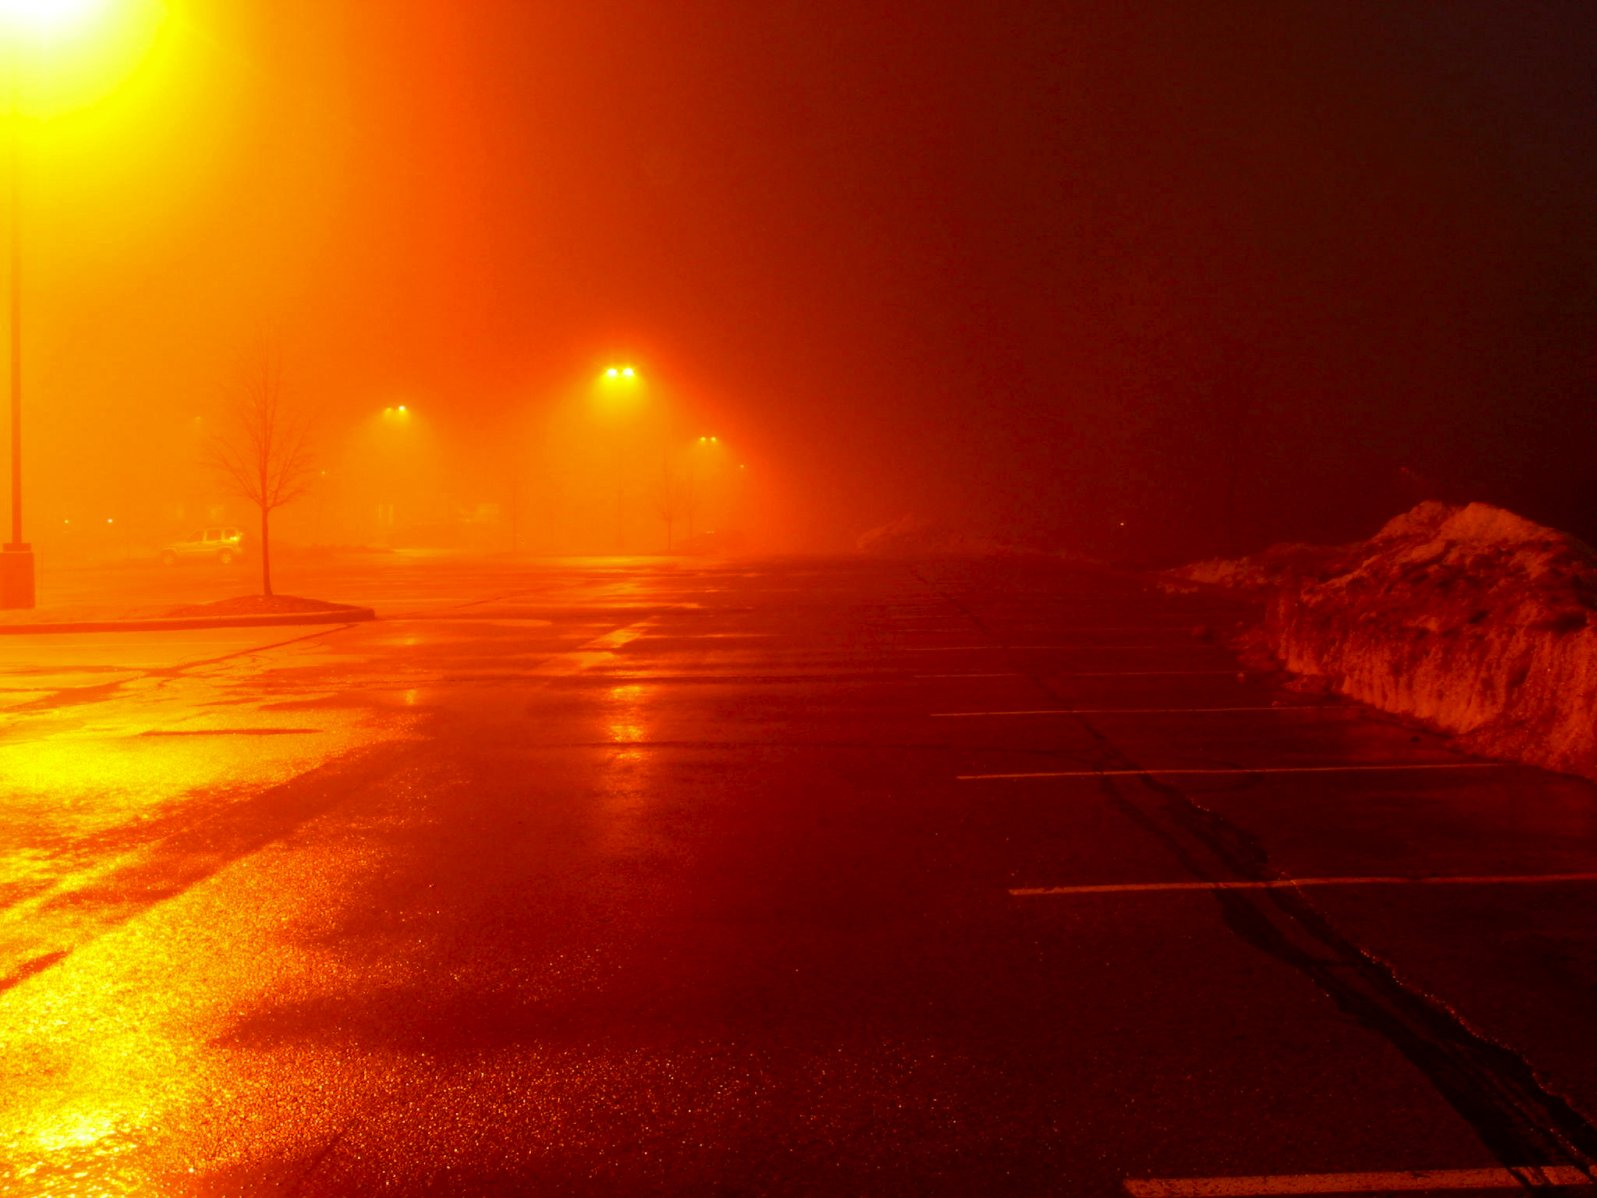 Images of Fog And Ice at Night in Wiconsin 2009 - soul-amp.com